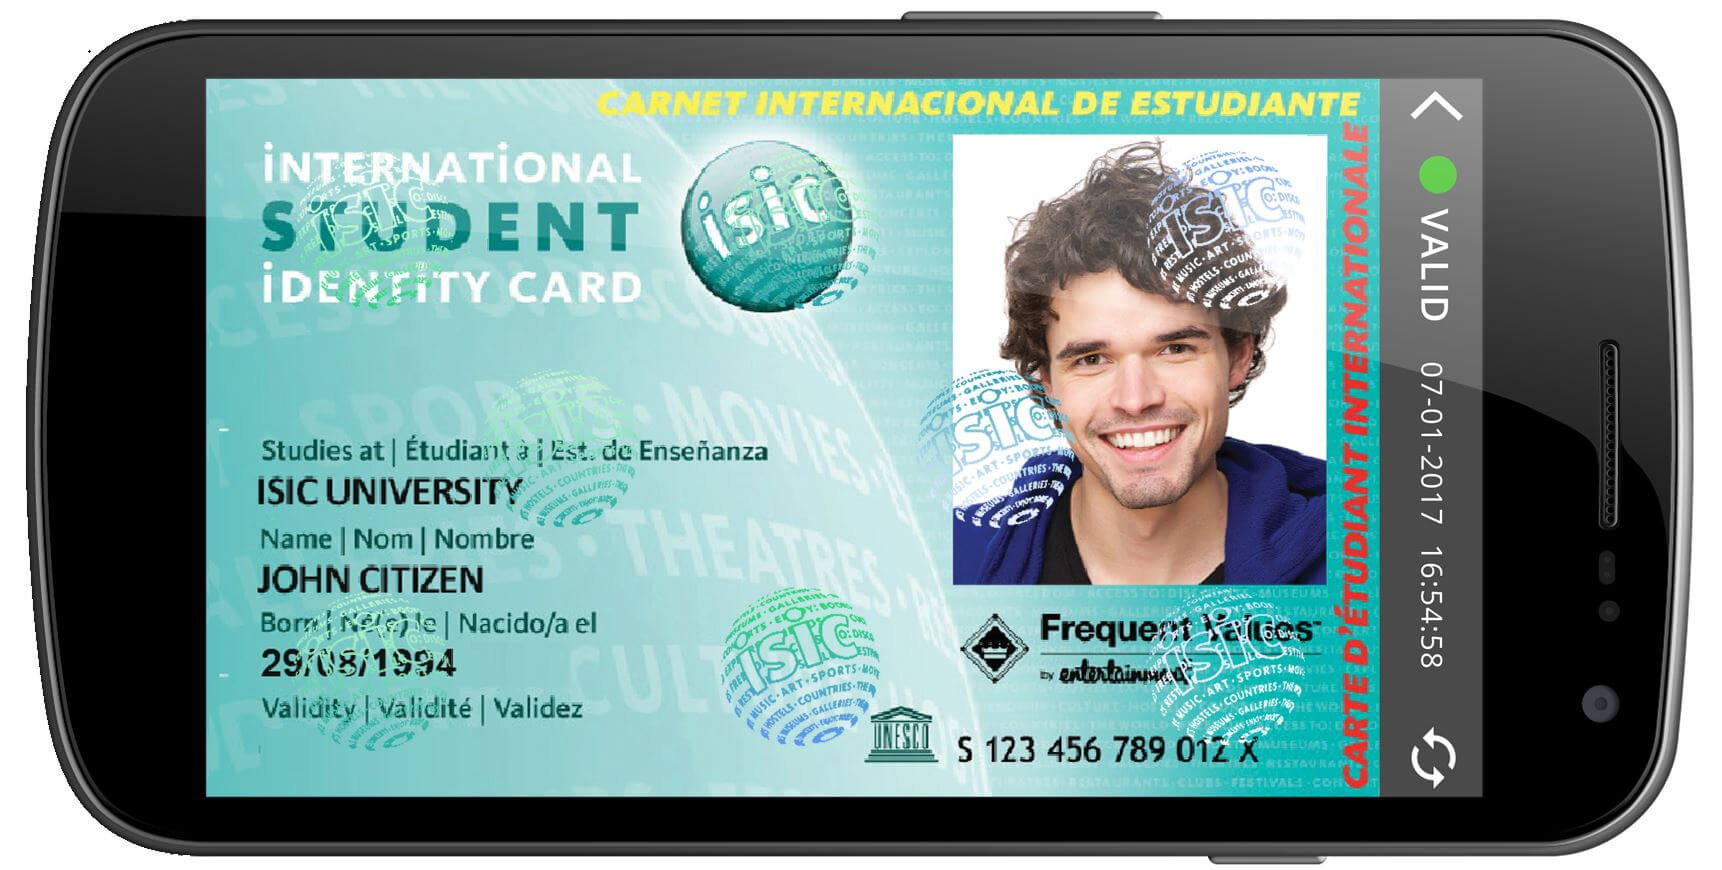 Isic Card Template - Atlantaauctionco | Atlantaauctionco throughout Isic Card Template